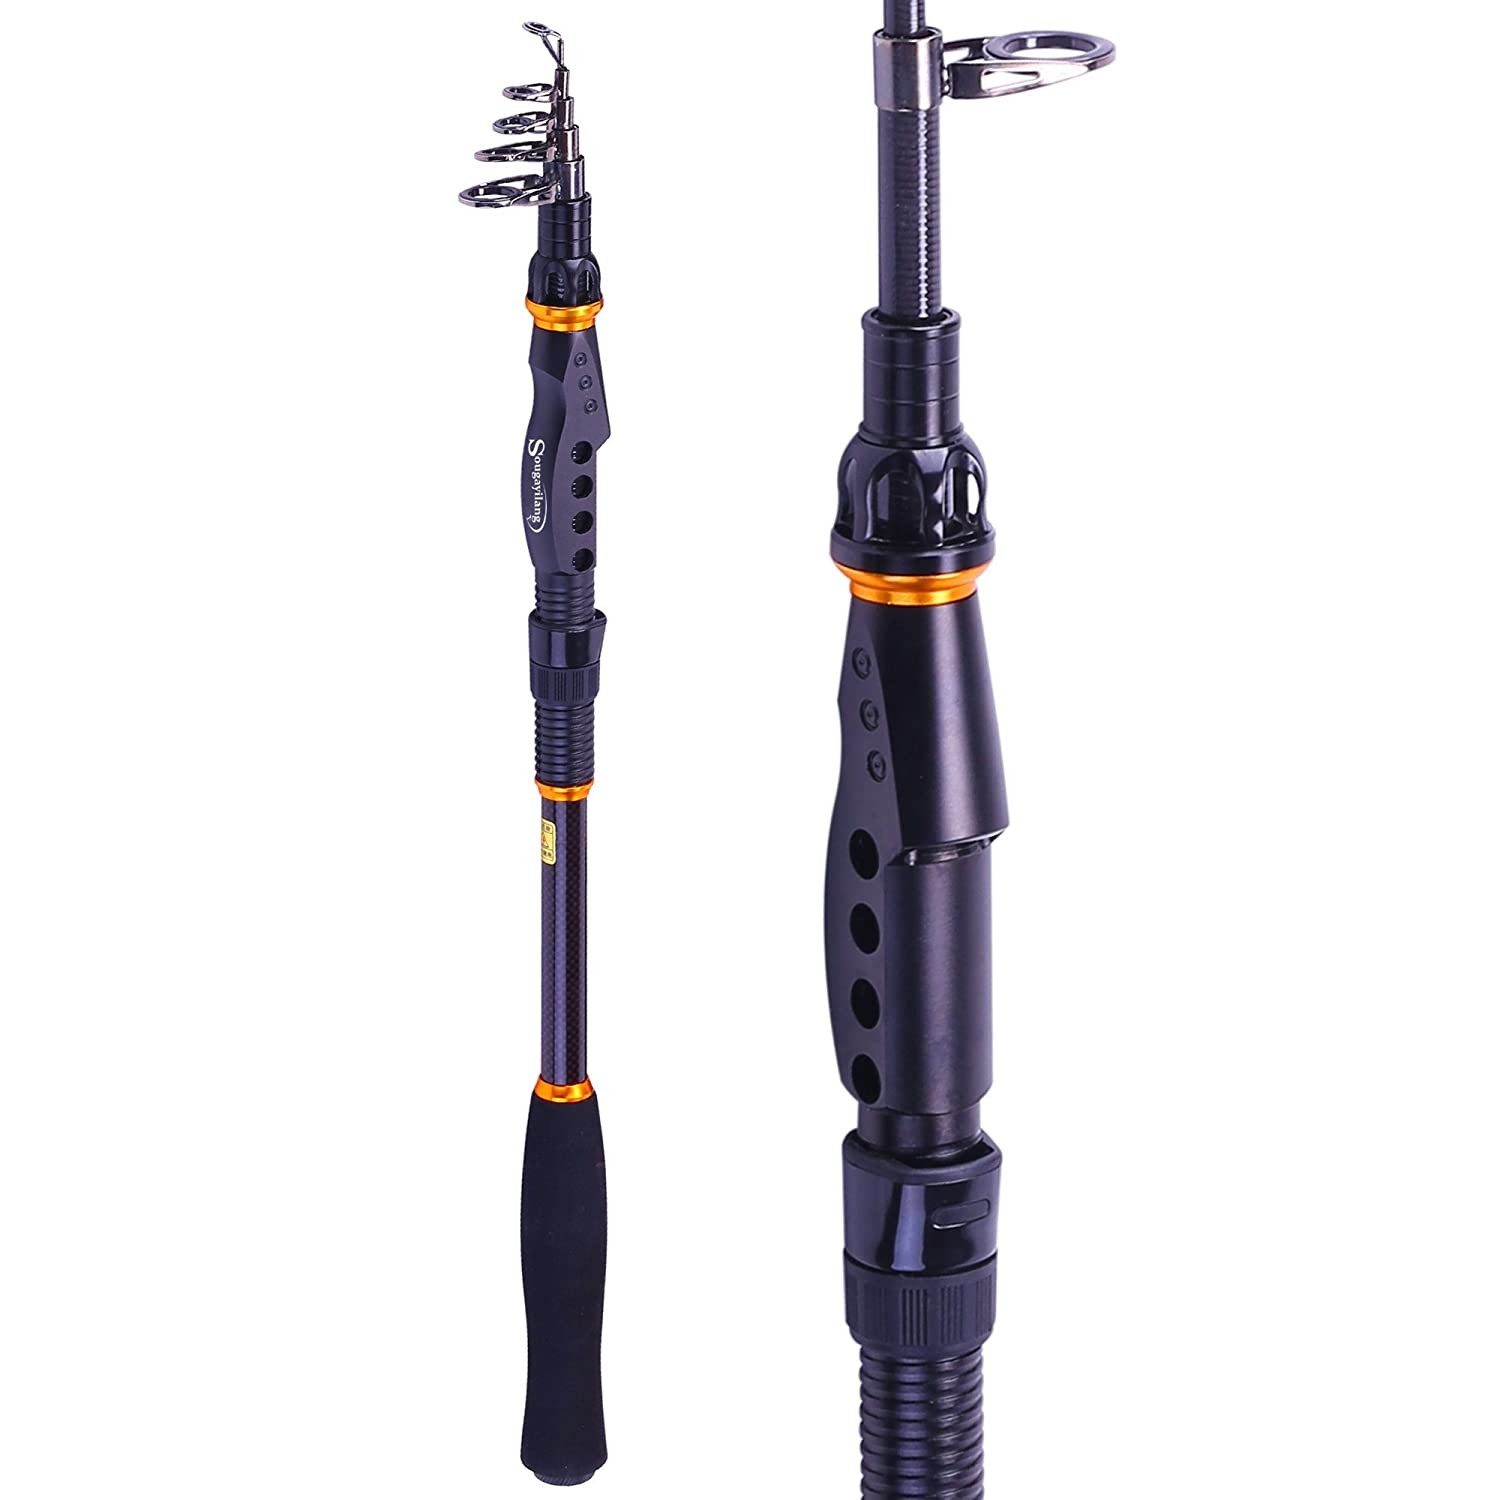 Sougayilang Fishing Rod, Carbon Fiber, Portable Telescopic